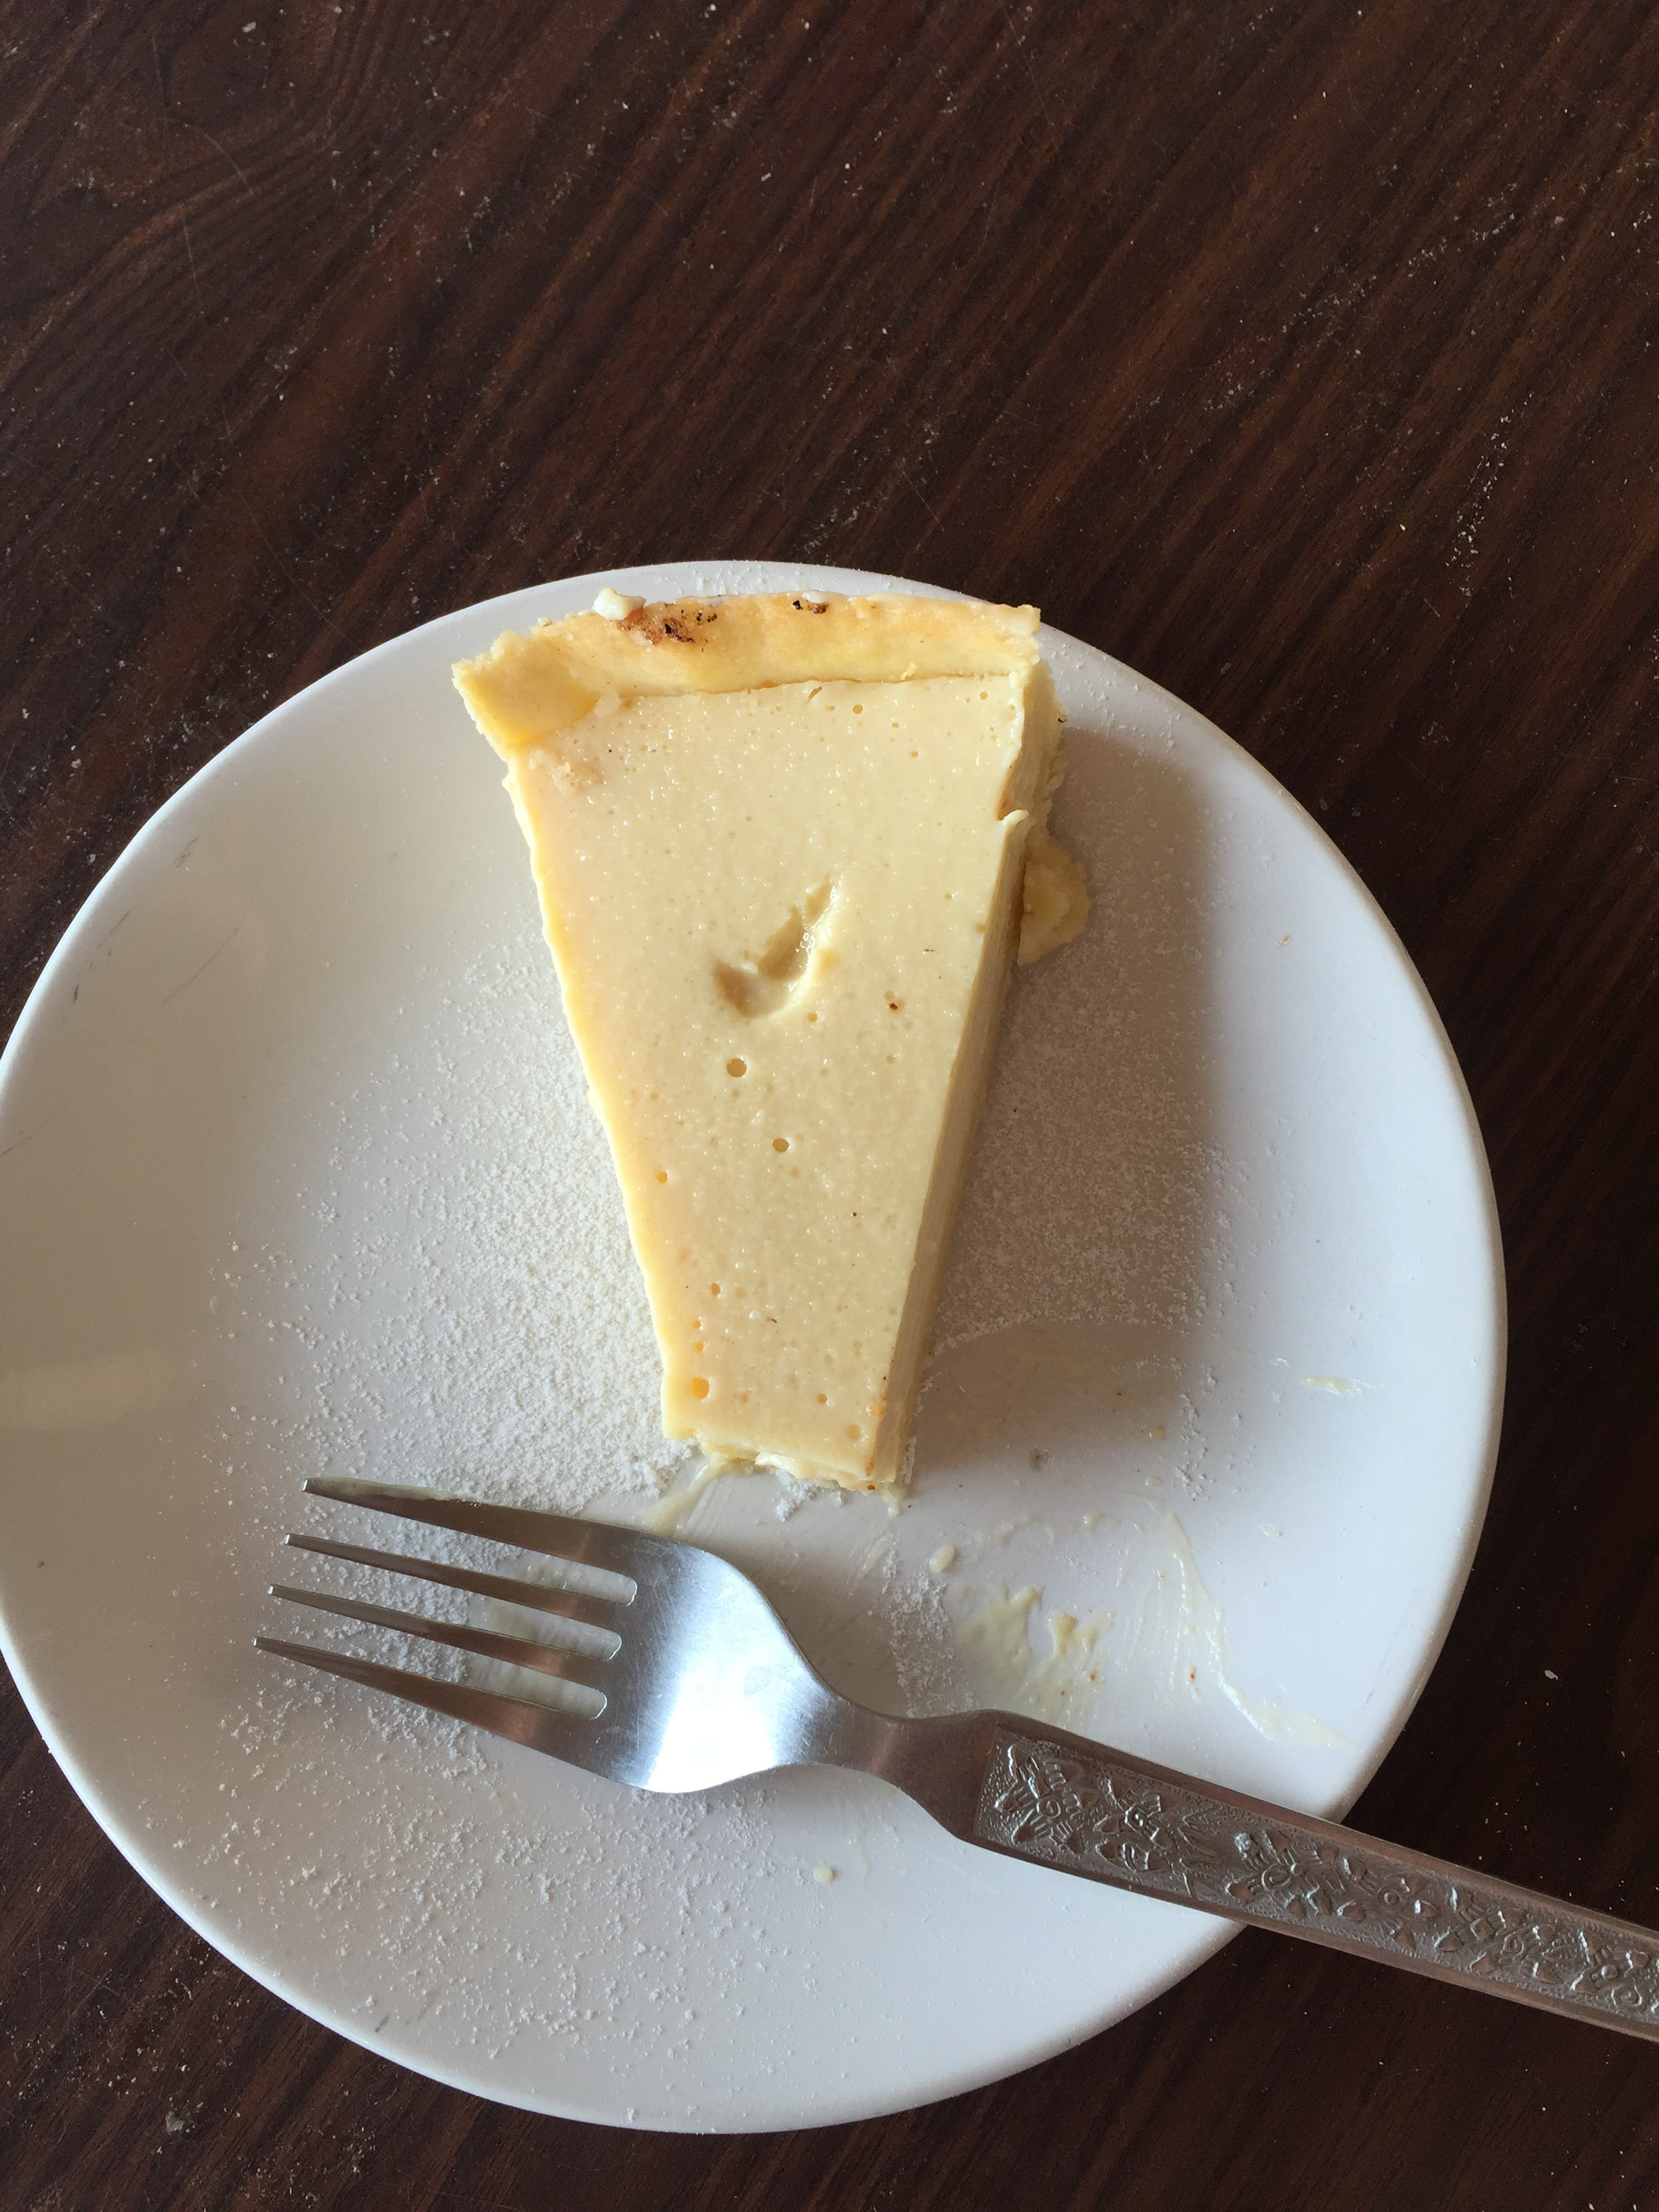 Lemon Tart at Home Patnem